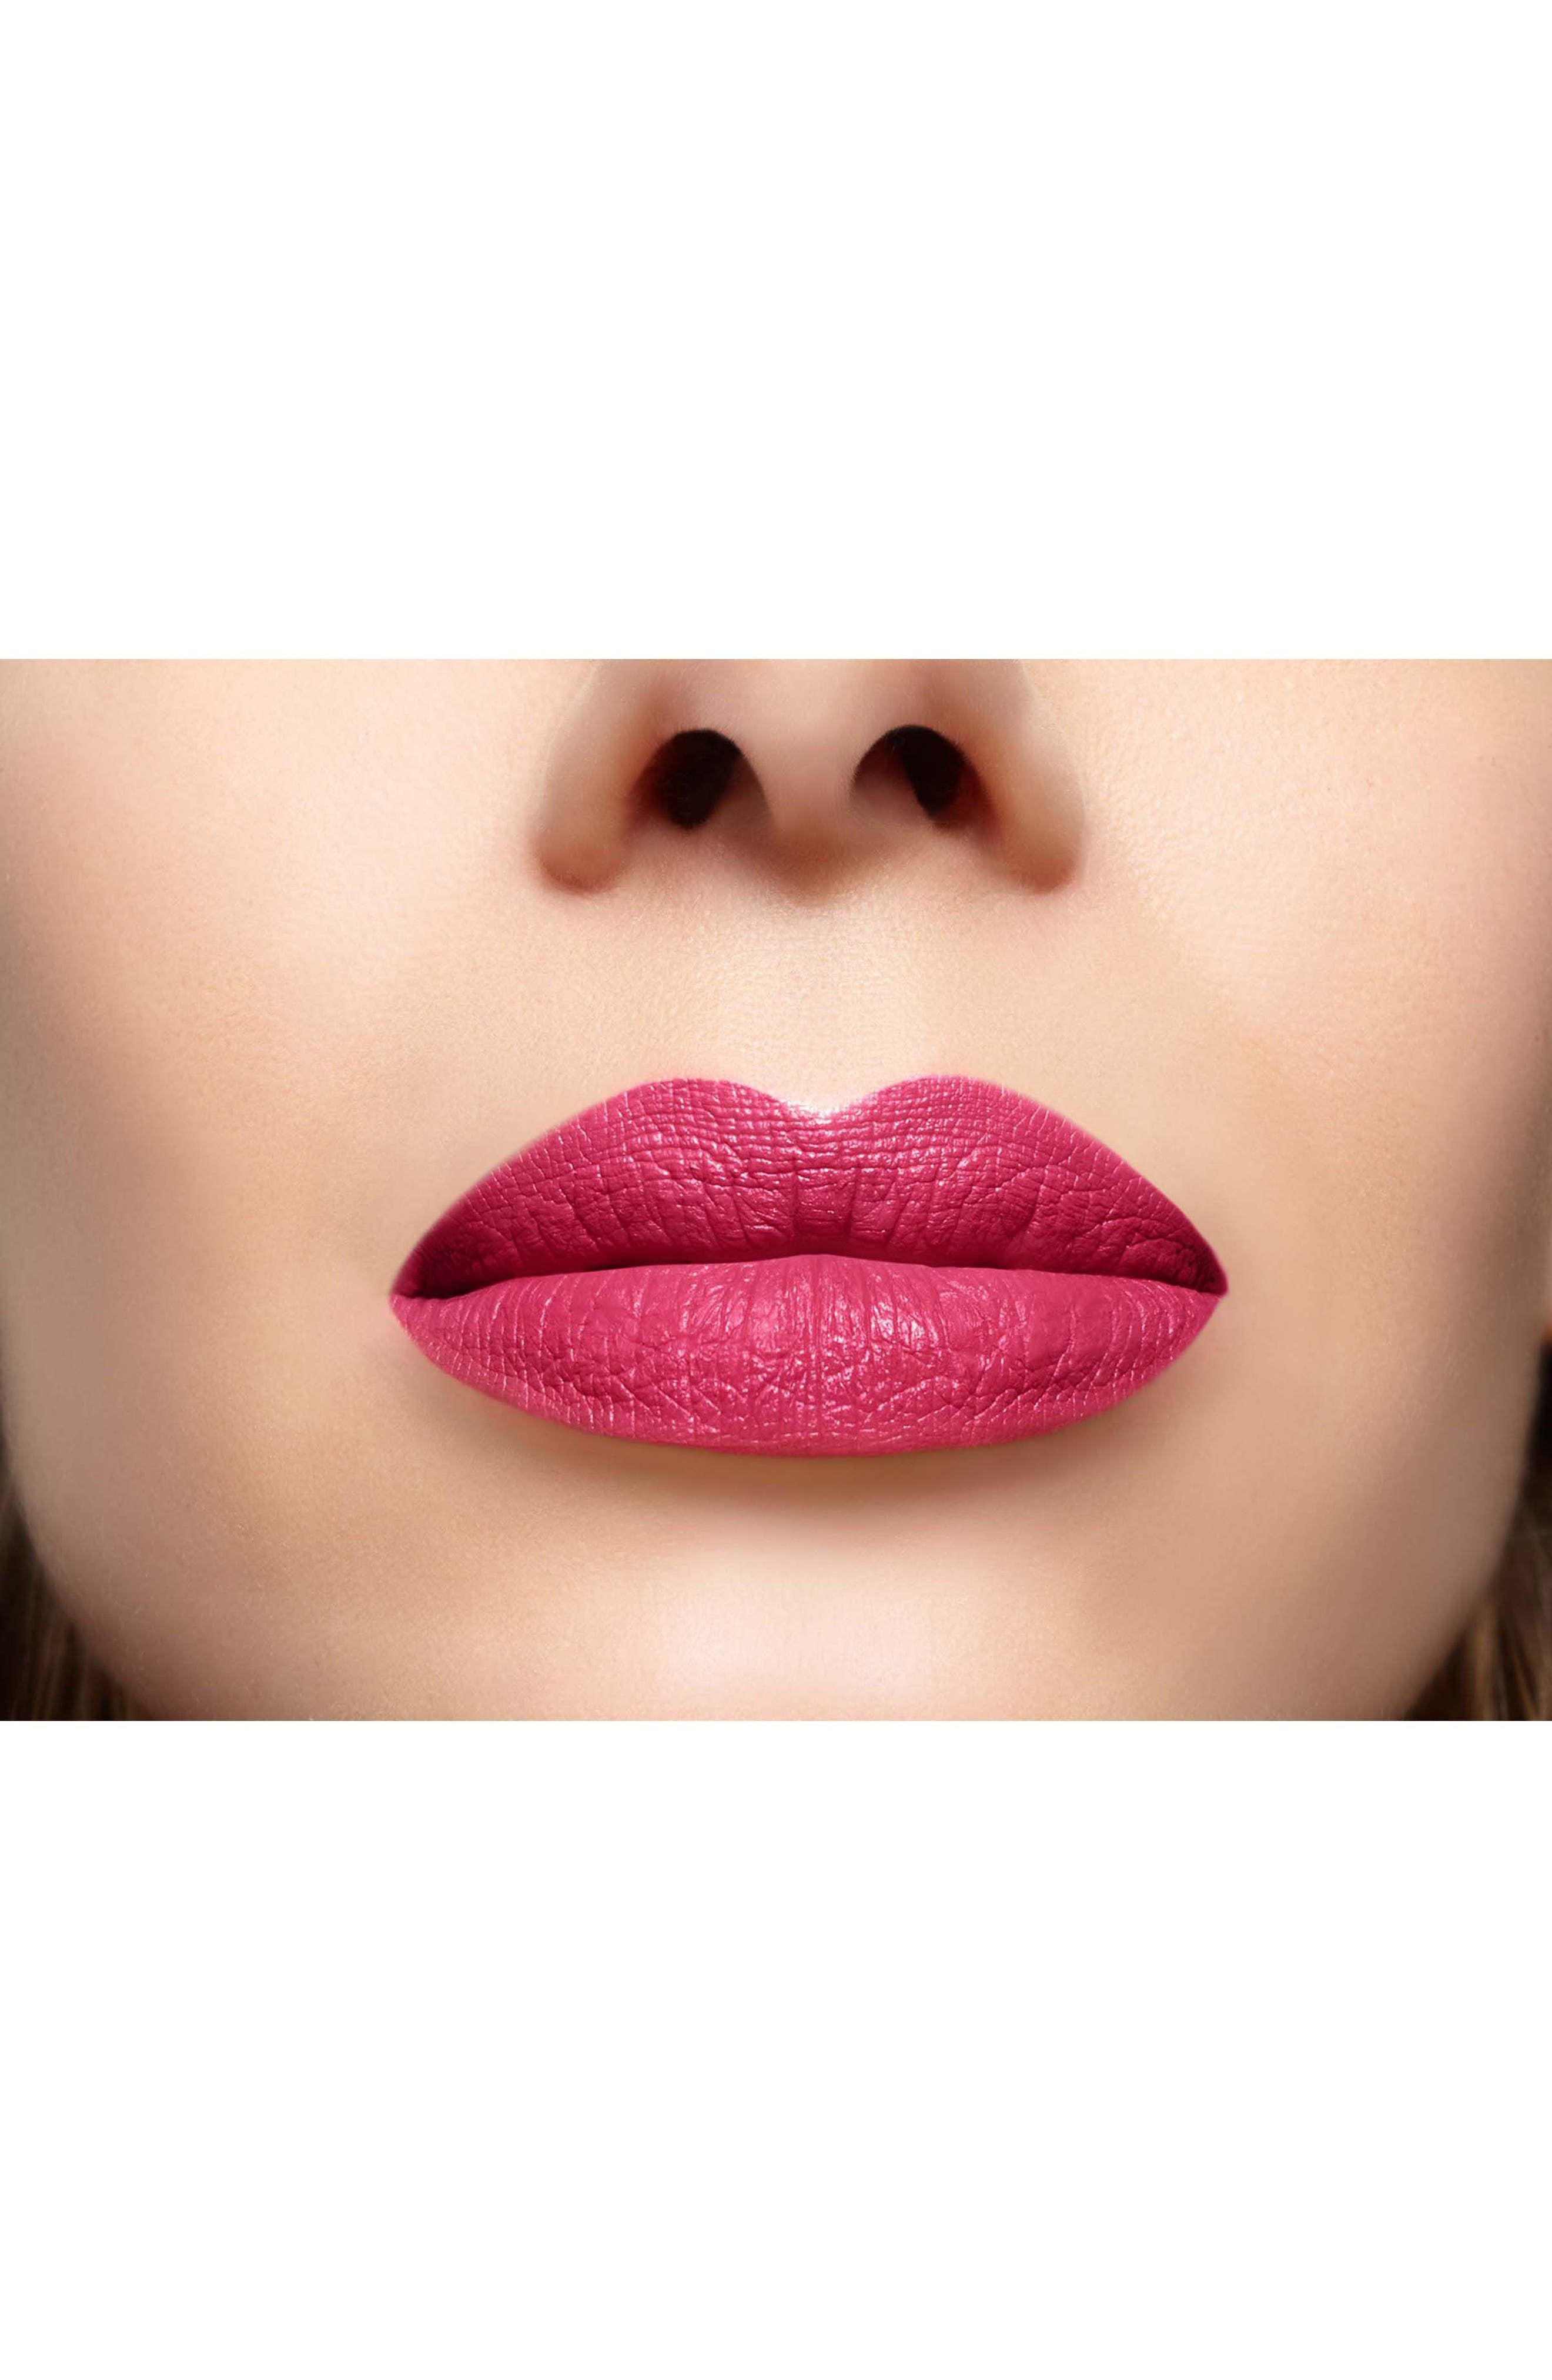 SPACE.NK.apothecary Lipstick Queen Famous Last Words Liquid Lipstick,                             Alternate thumbnail 3, color,                             ROSEBUD - BRIGHT PINK